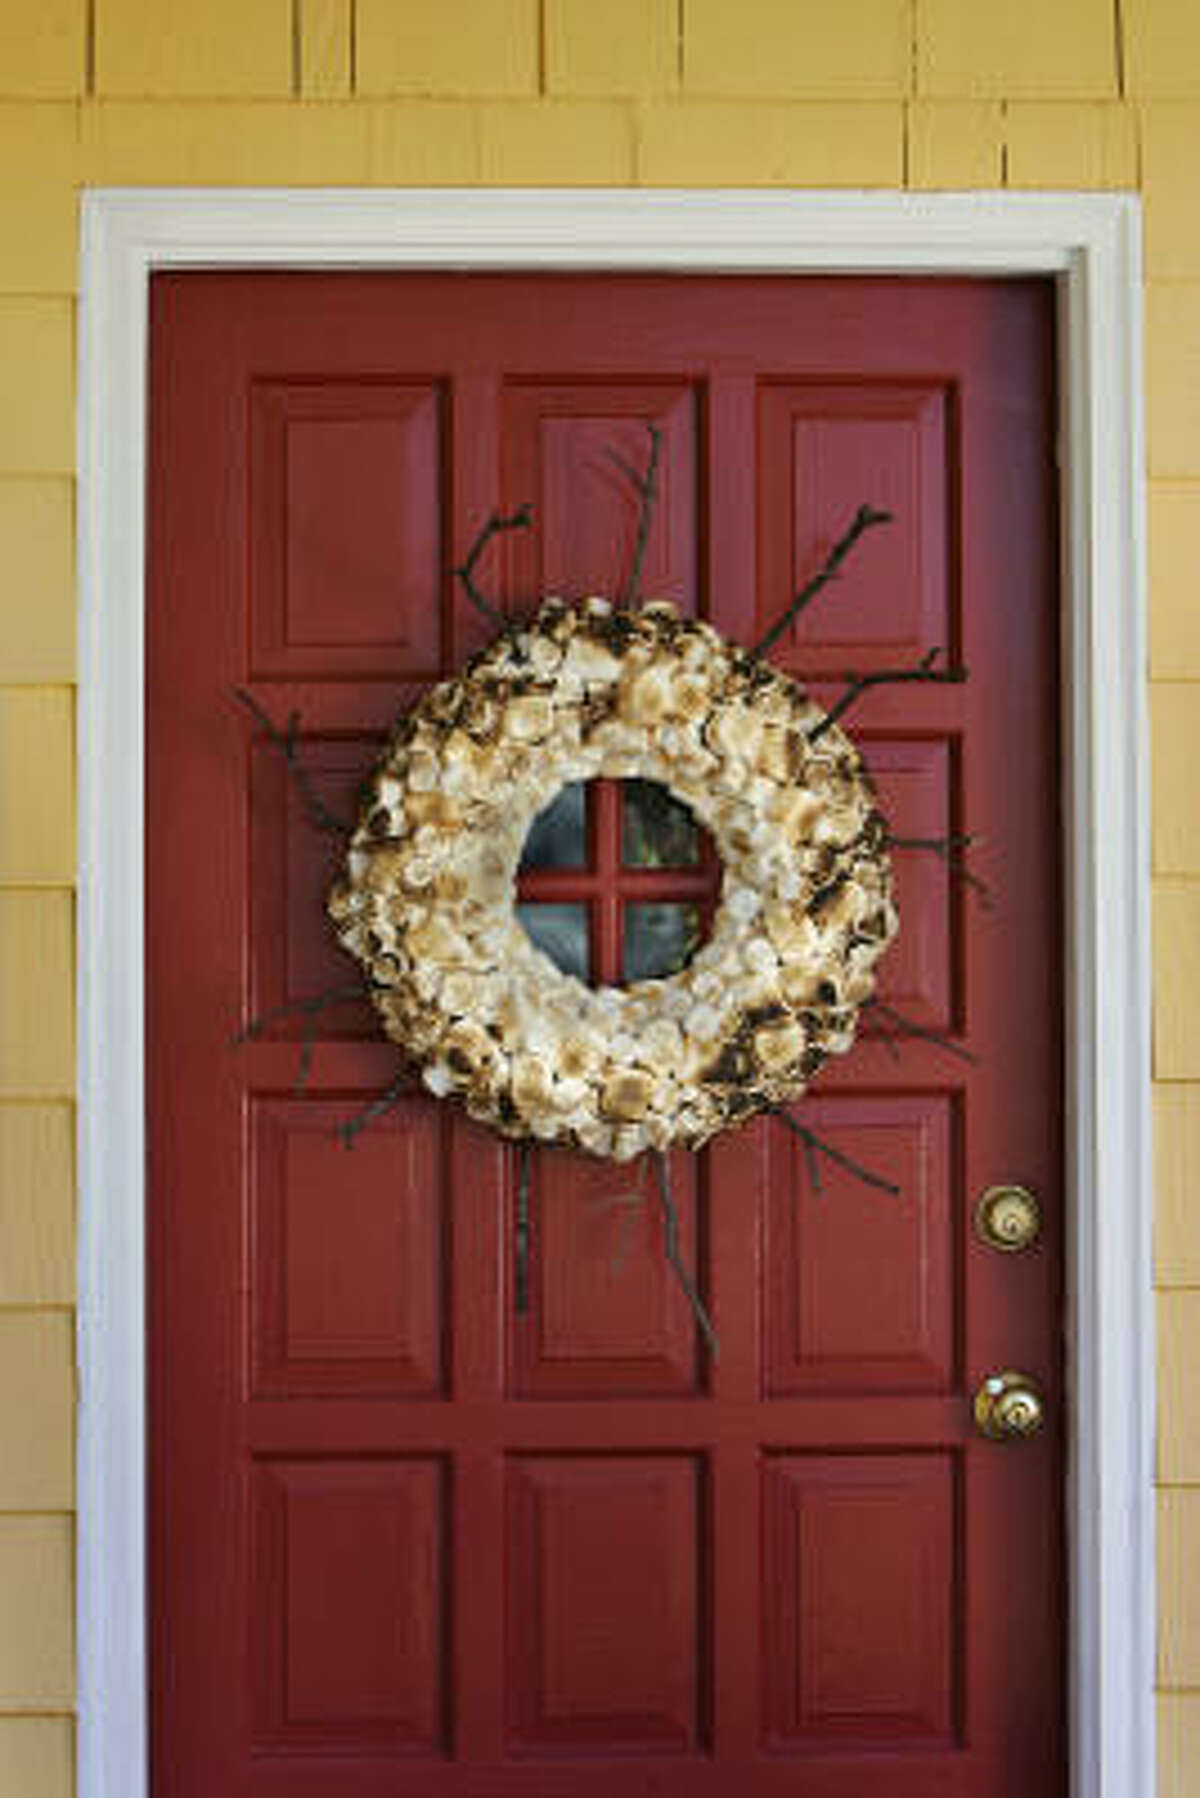 DIY: For the non-traditional, sweet-toothed crafter: Use toothpicks to adhere marshmallows to a wreath, then toast away.